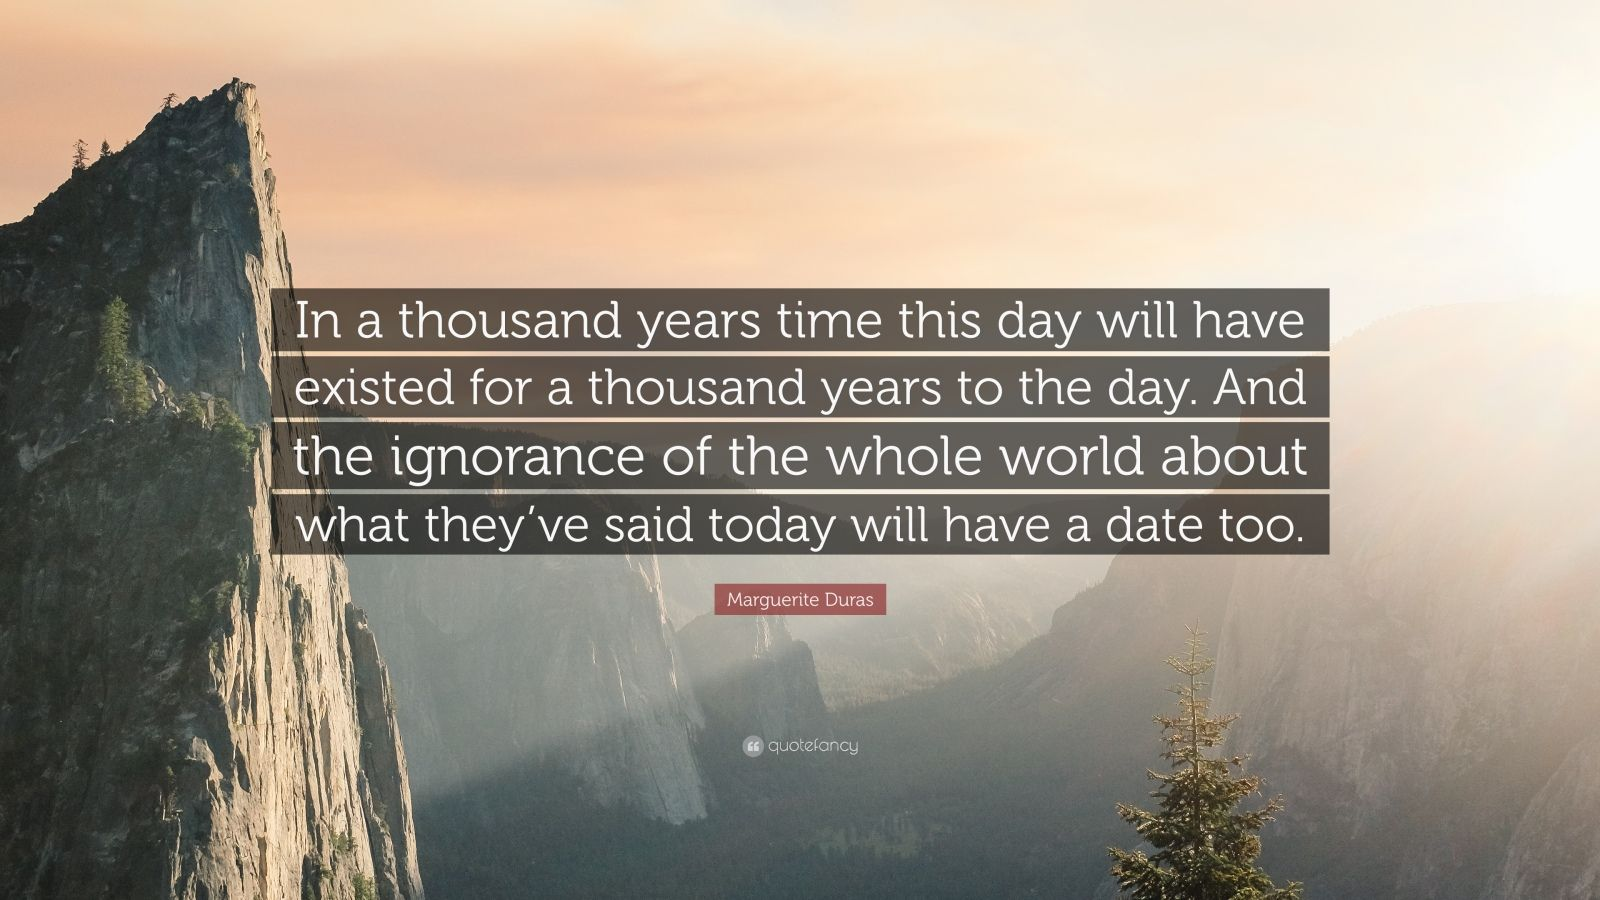 """Marguerite Duras Quote: """"In a thousand years time this day will have existed for a thousand years to the day. And the ignorance of the whole world about what they've said today will have a date too."""""""